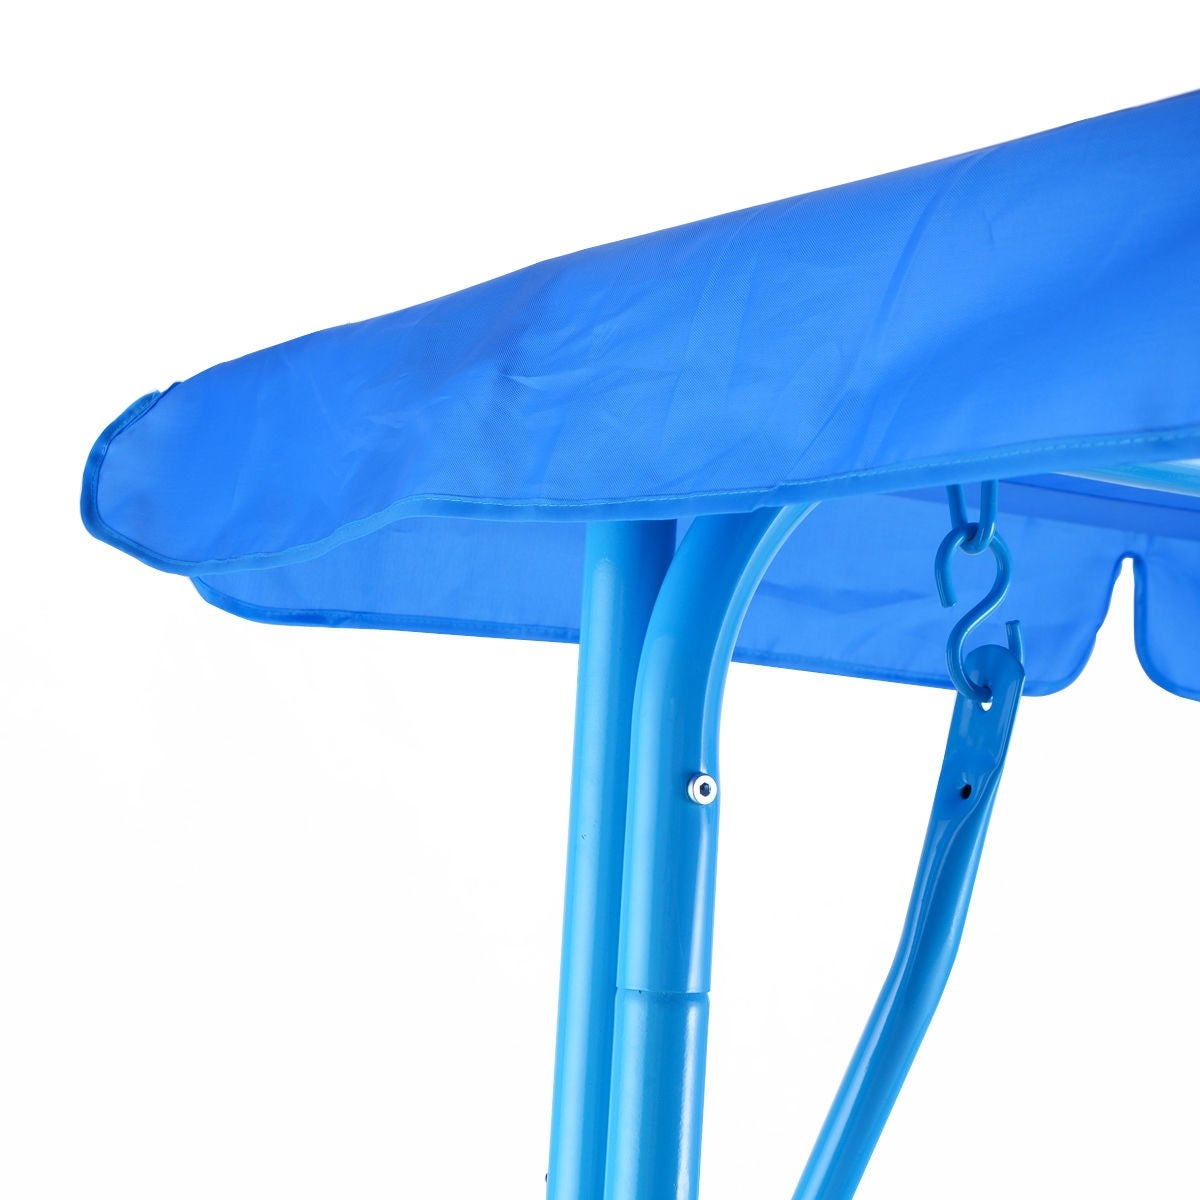 Costway Kids Patio Swing Chair Children Porch Bench Canopy 2 Person Yard  Furniture Blue   Free Shipping Today   Overstock   26802104